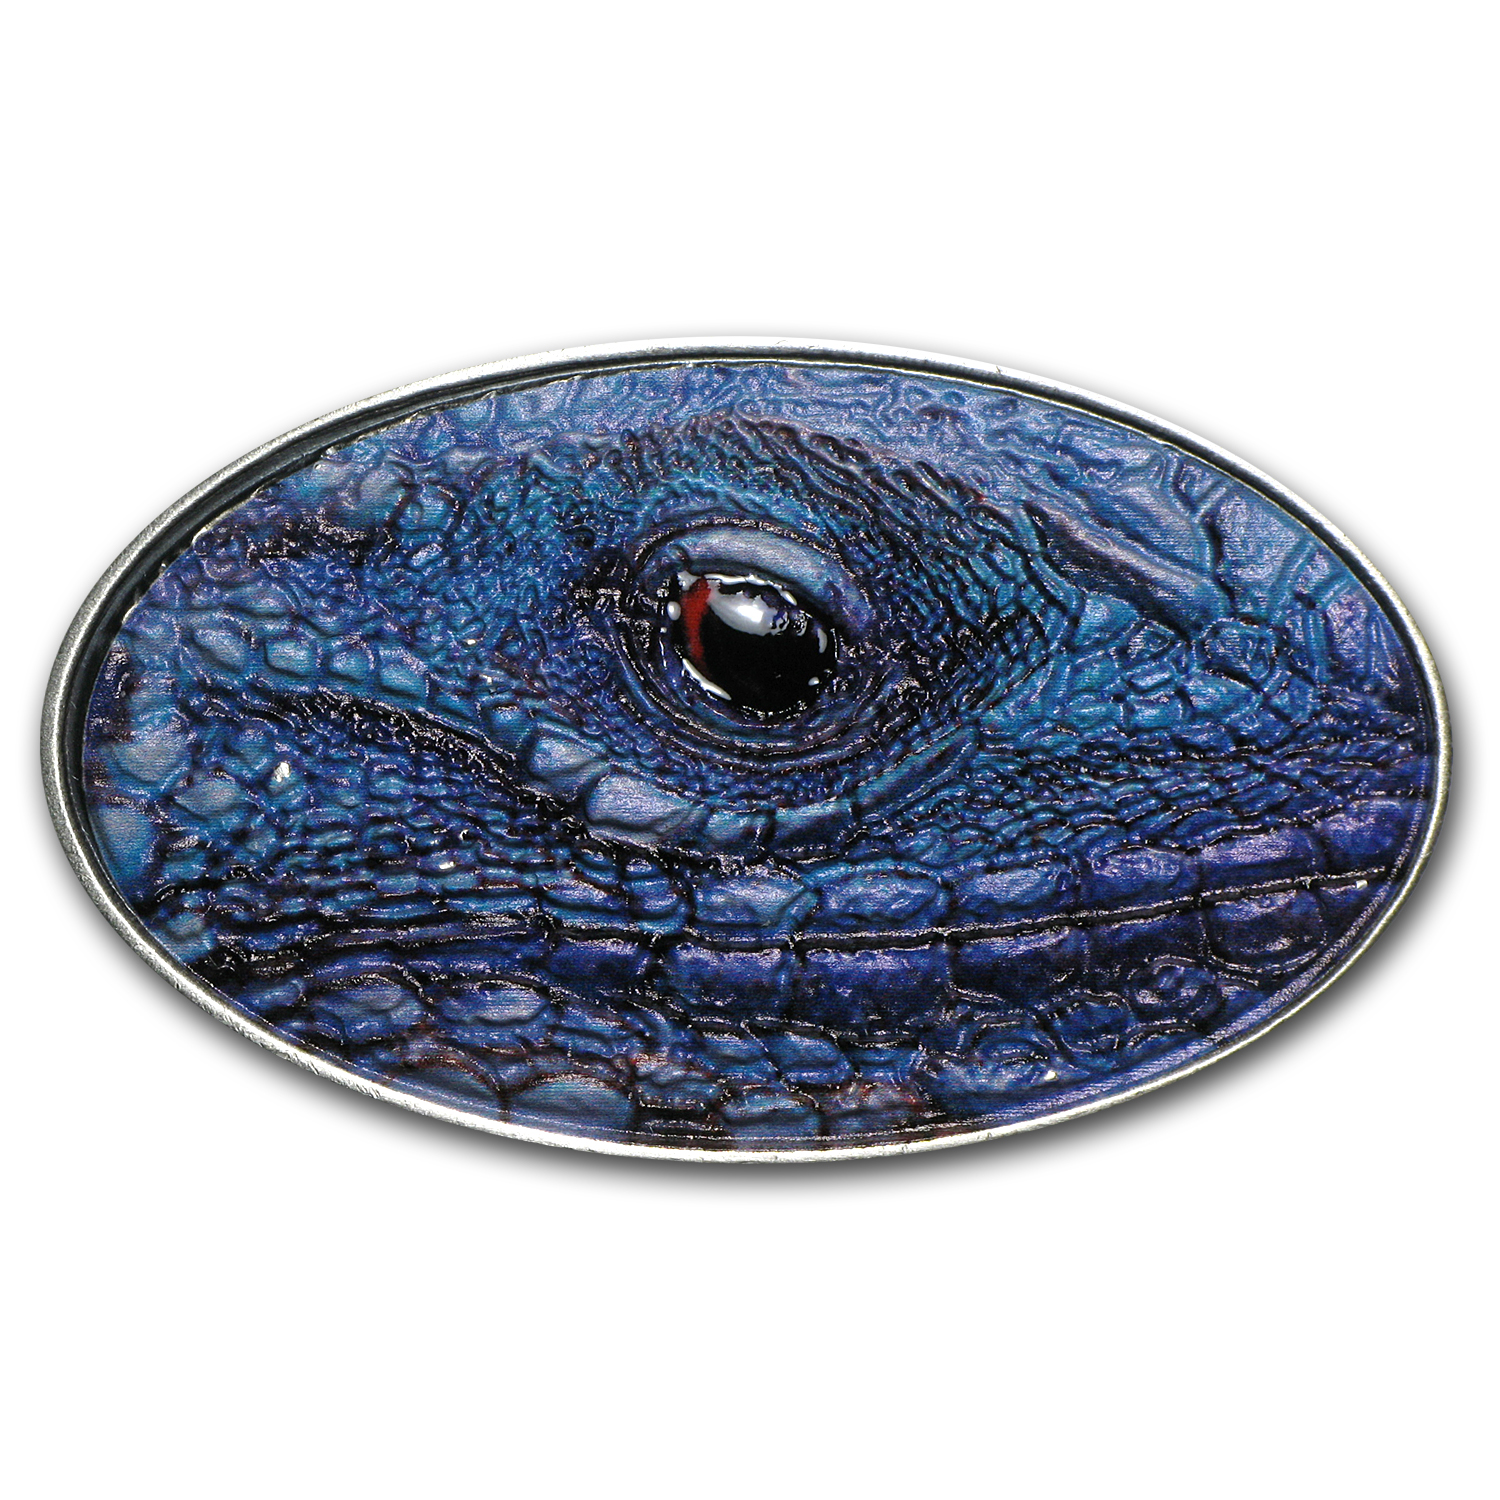 Niue 2012 Silver $2 XL Ultra High Relief Blue Iguana